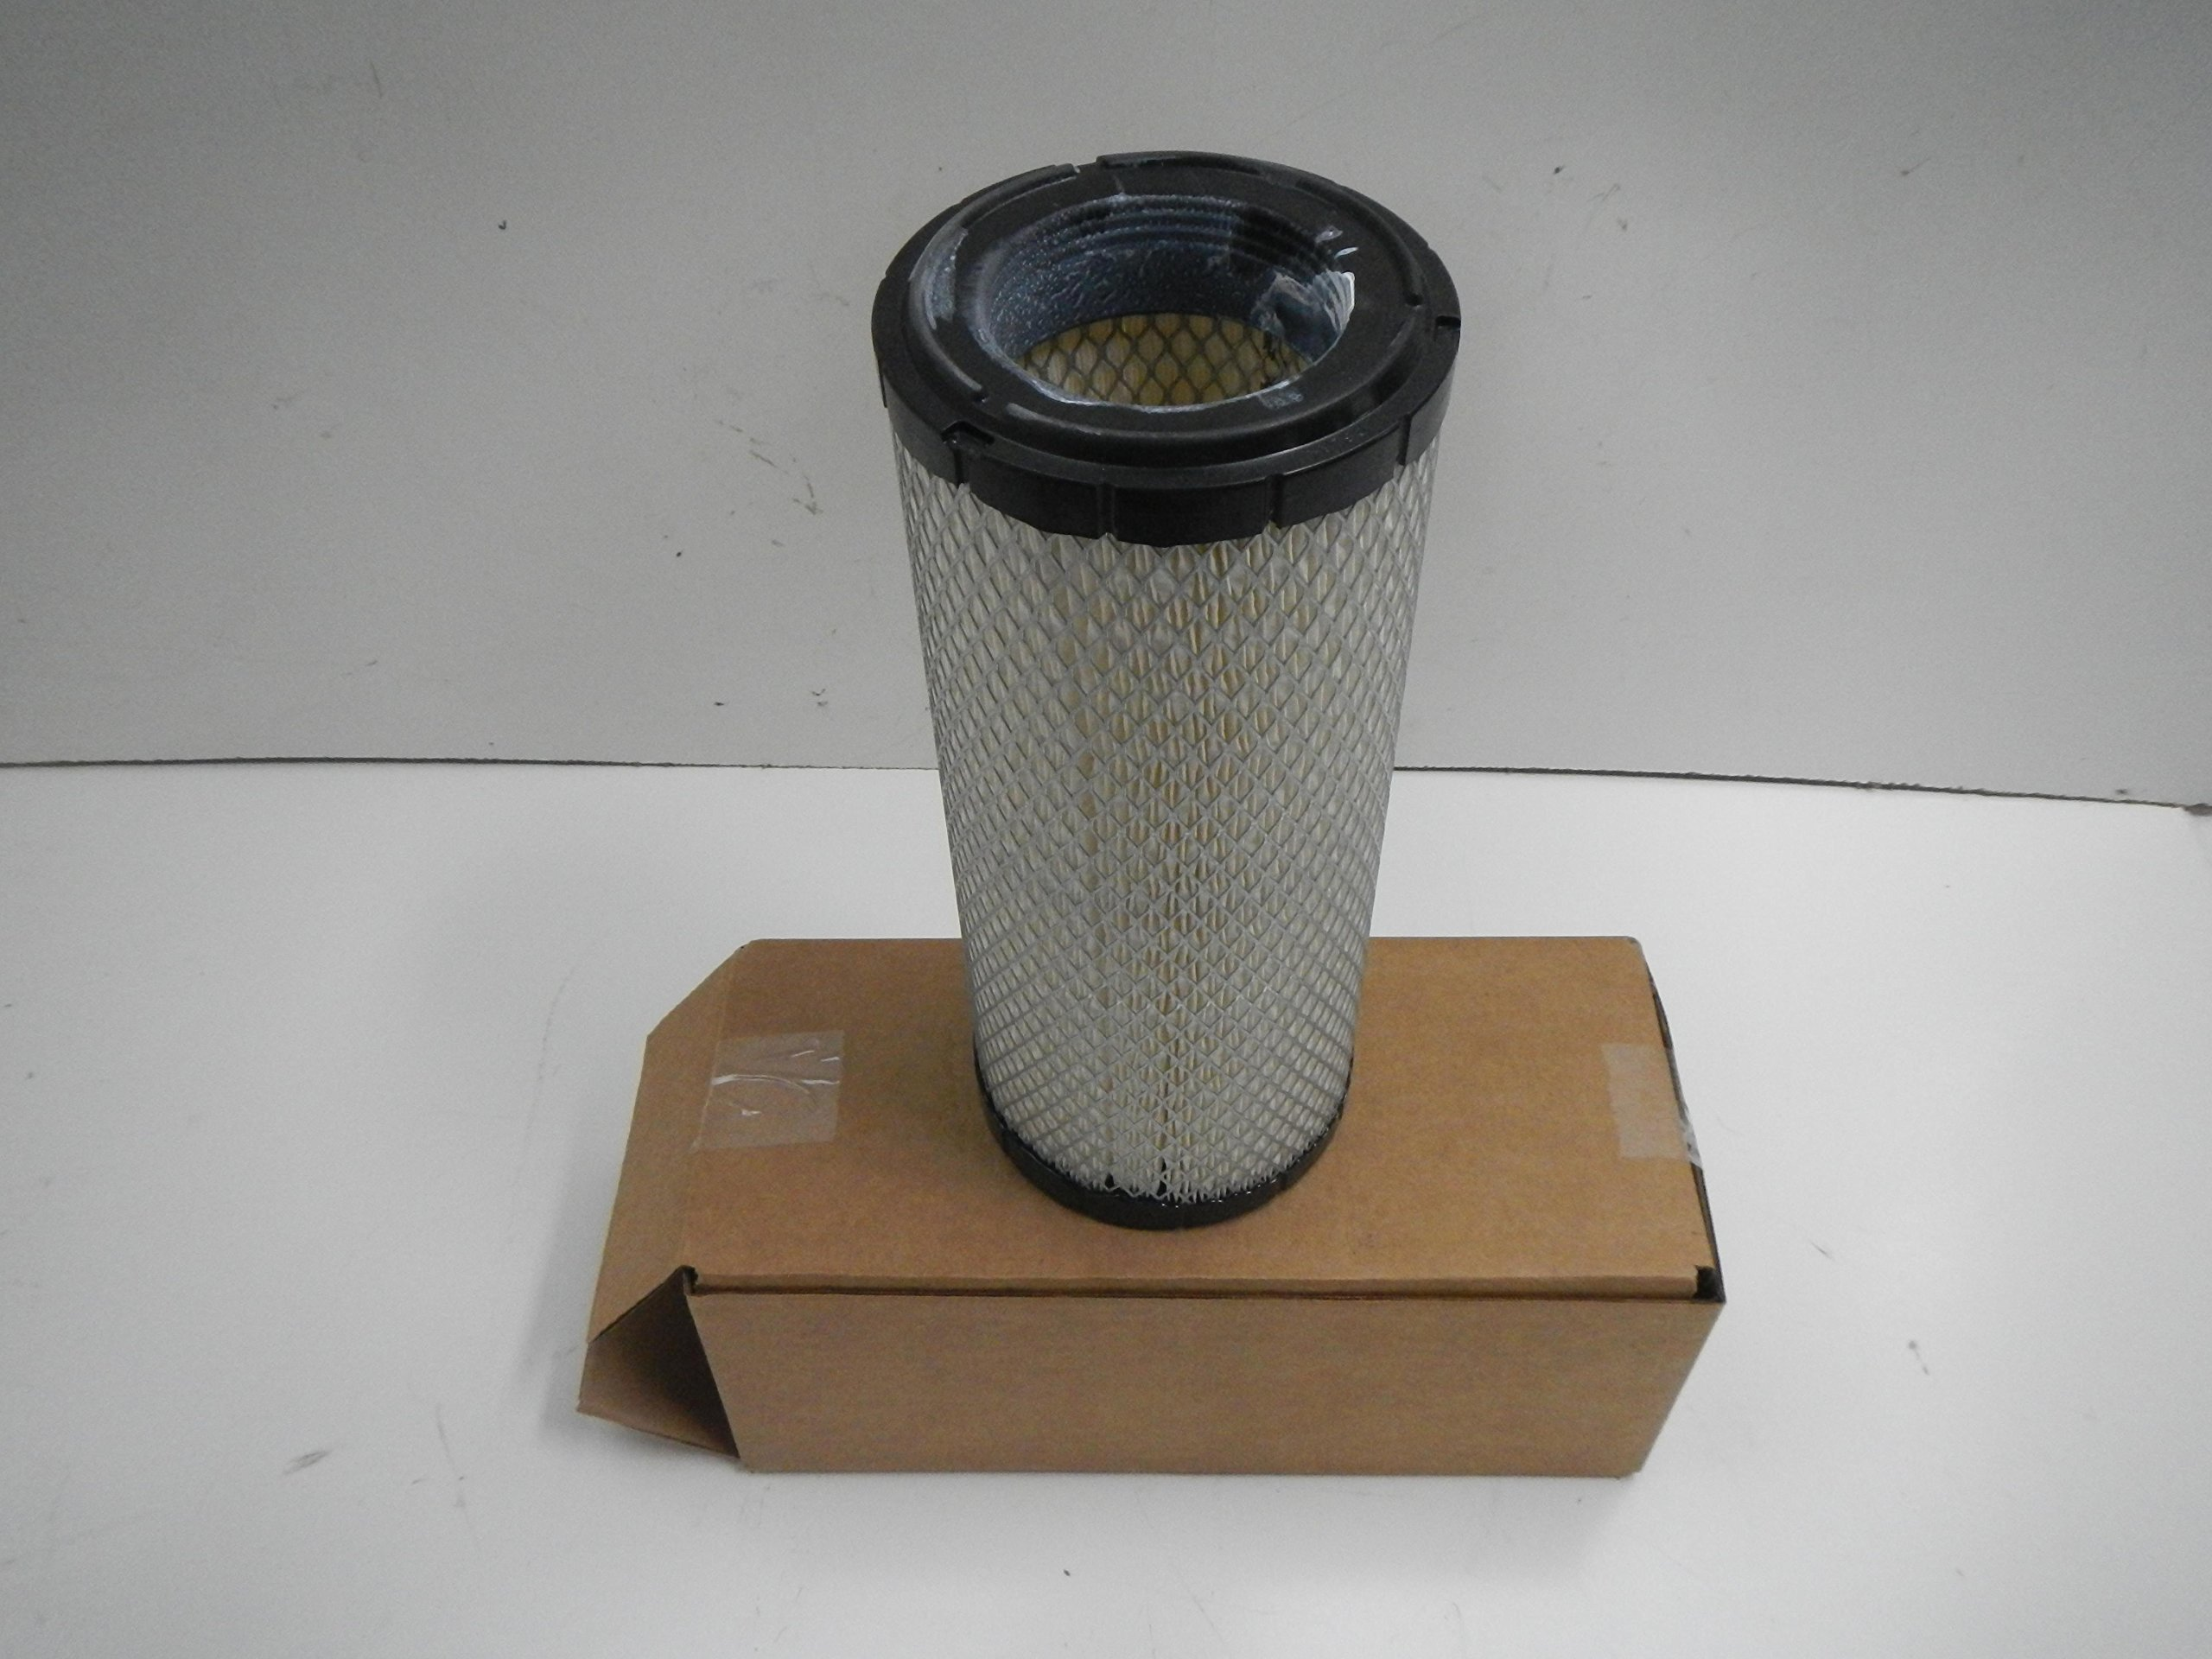 Can Am Maverick X3 XDS XRS stock air filter OEM NEW #715900422 by Can-Am